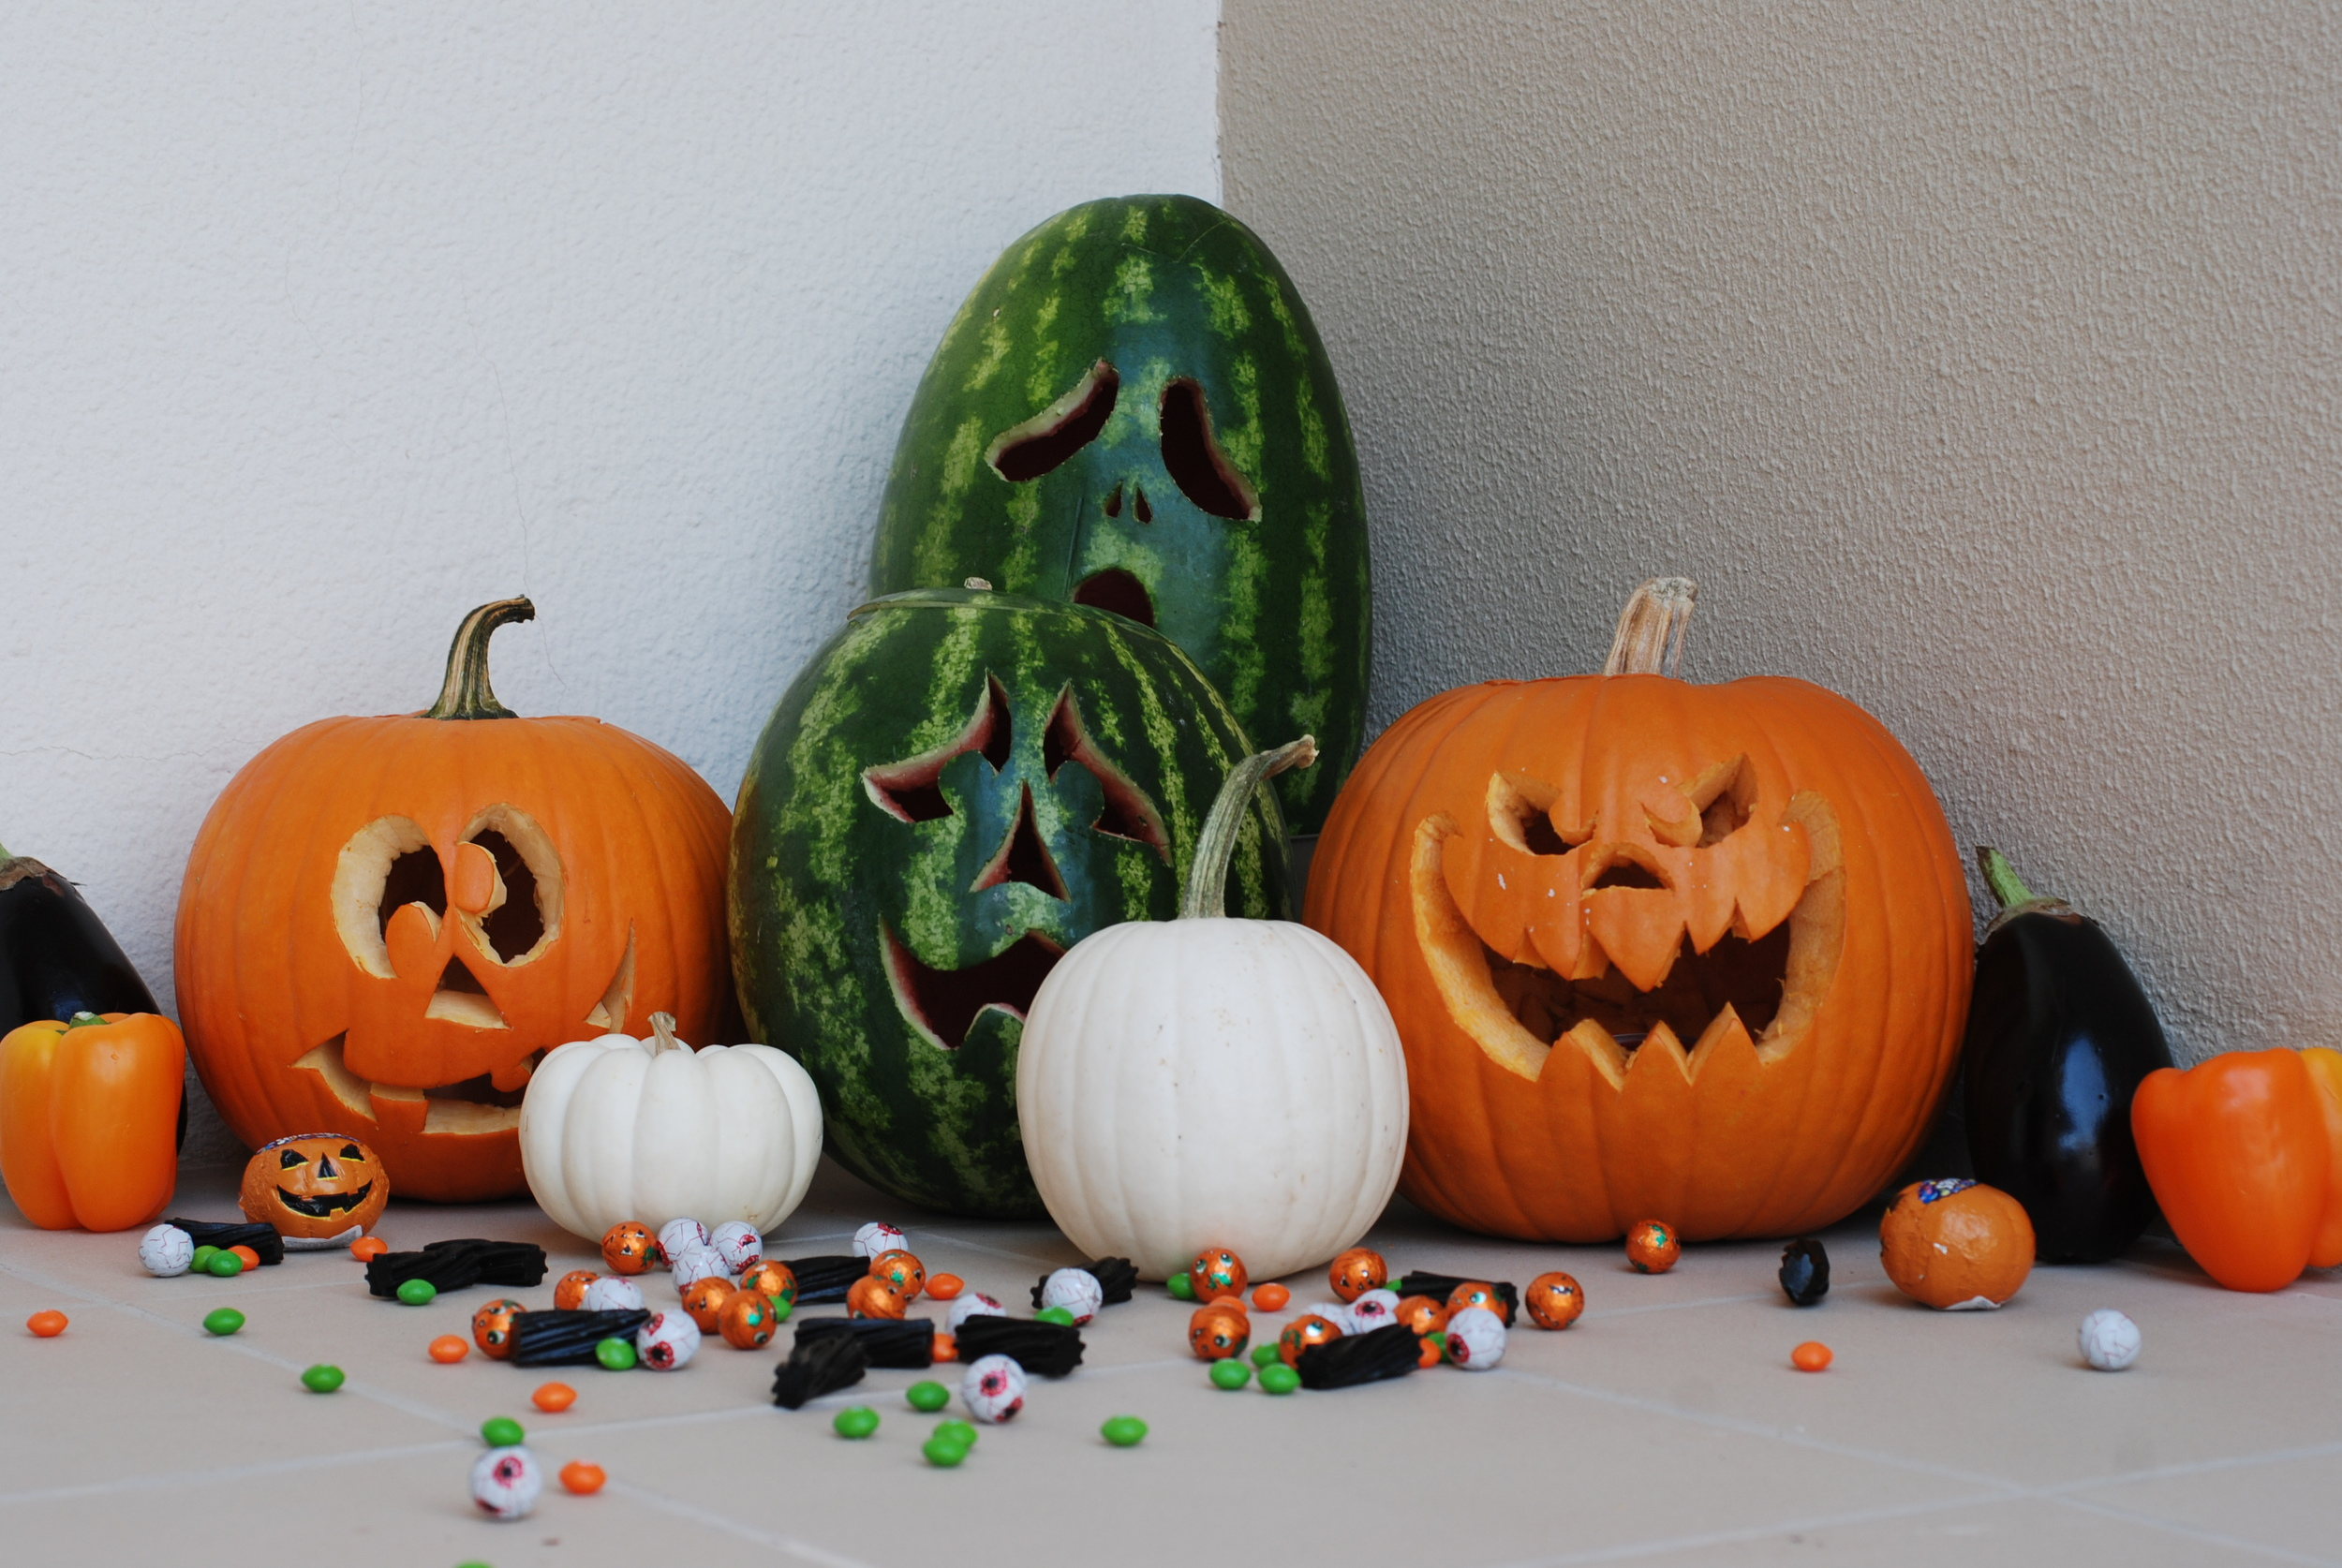 The Final line-up ... such great use of colour when mixing the watermelon and pumpkin... why not throw some candy into the mix it is halloween after all